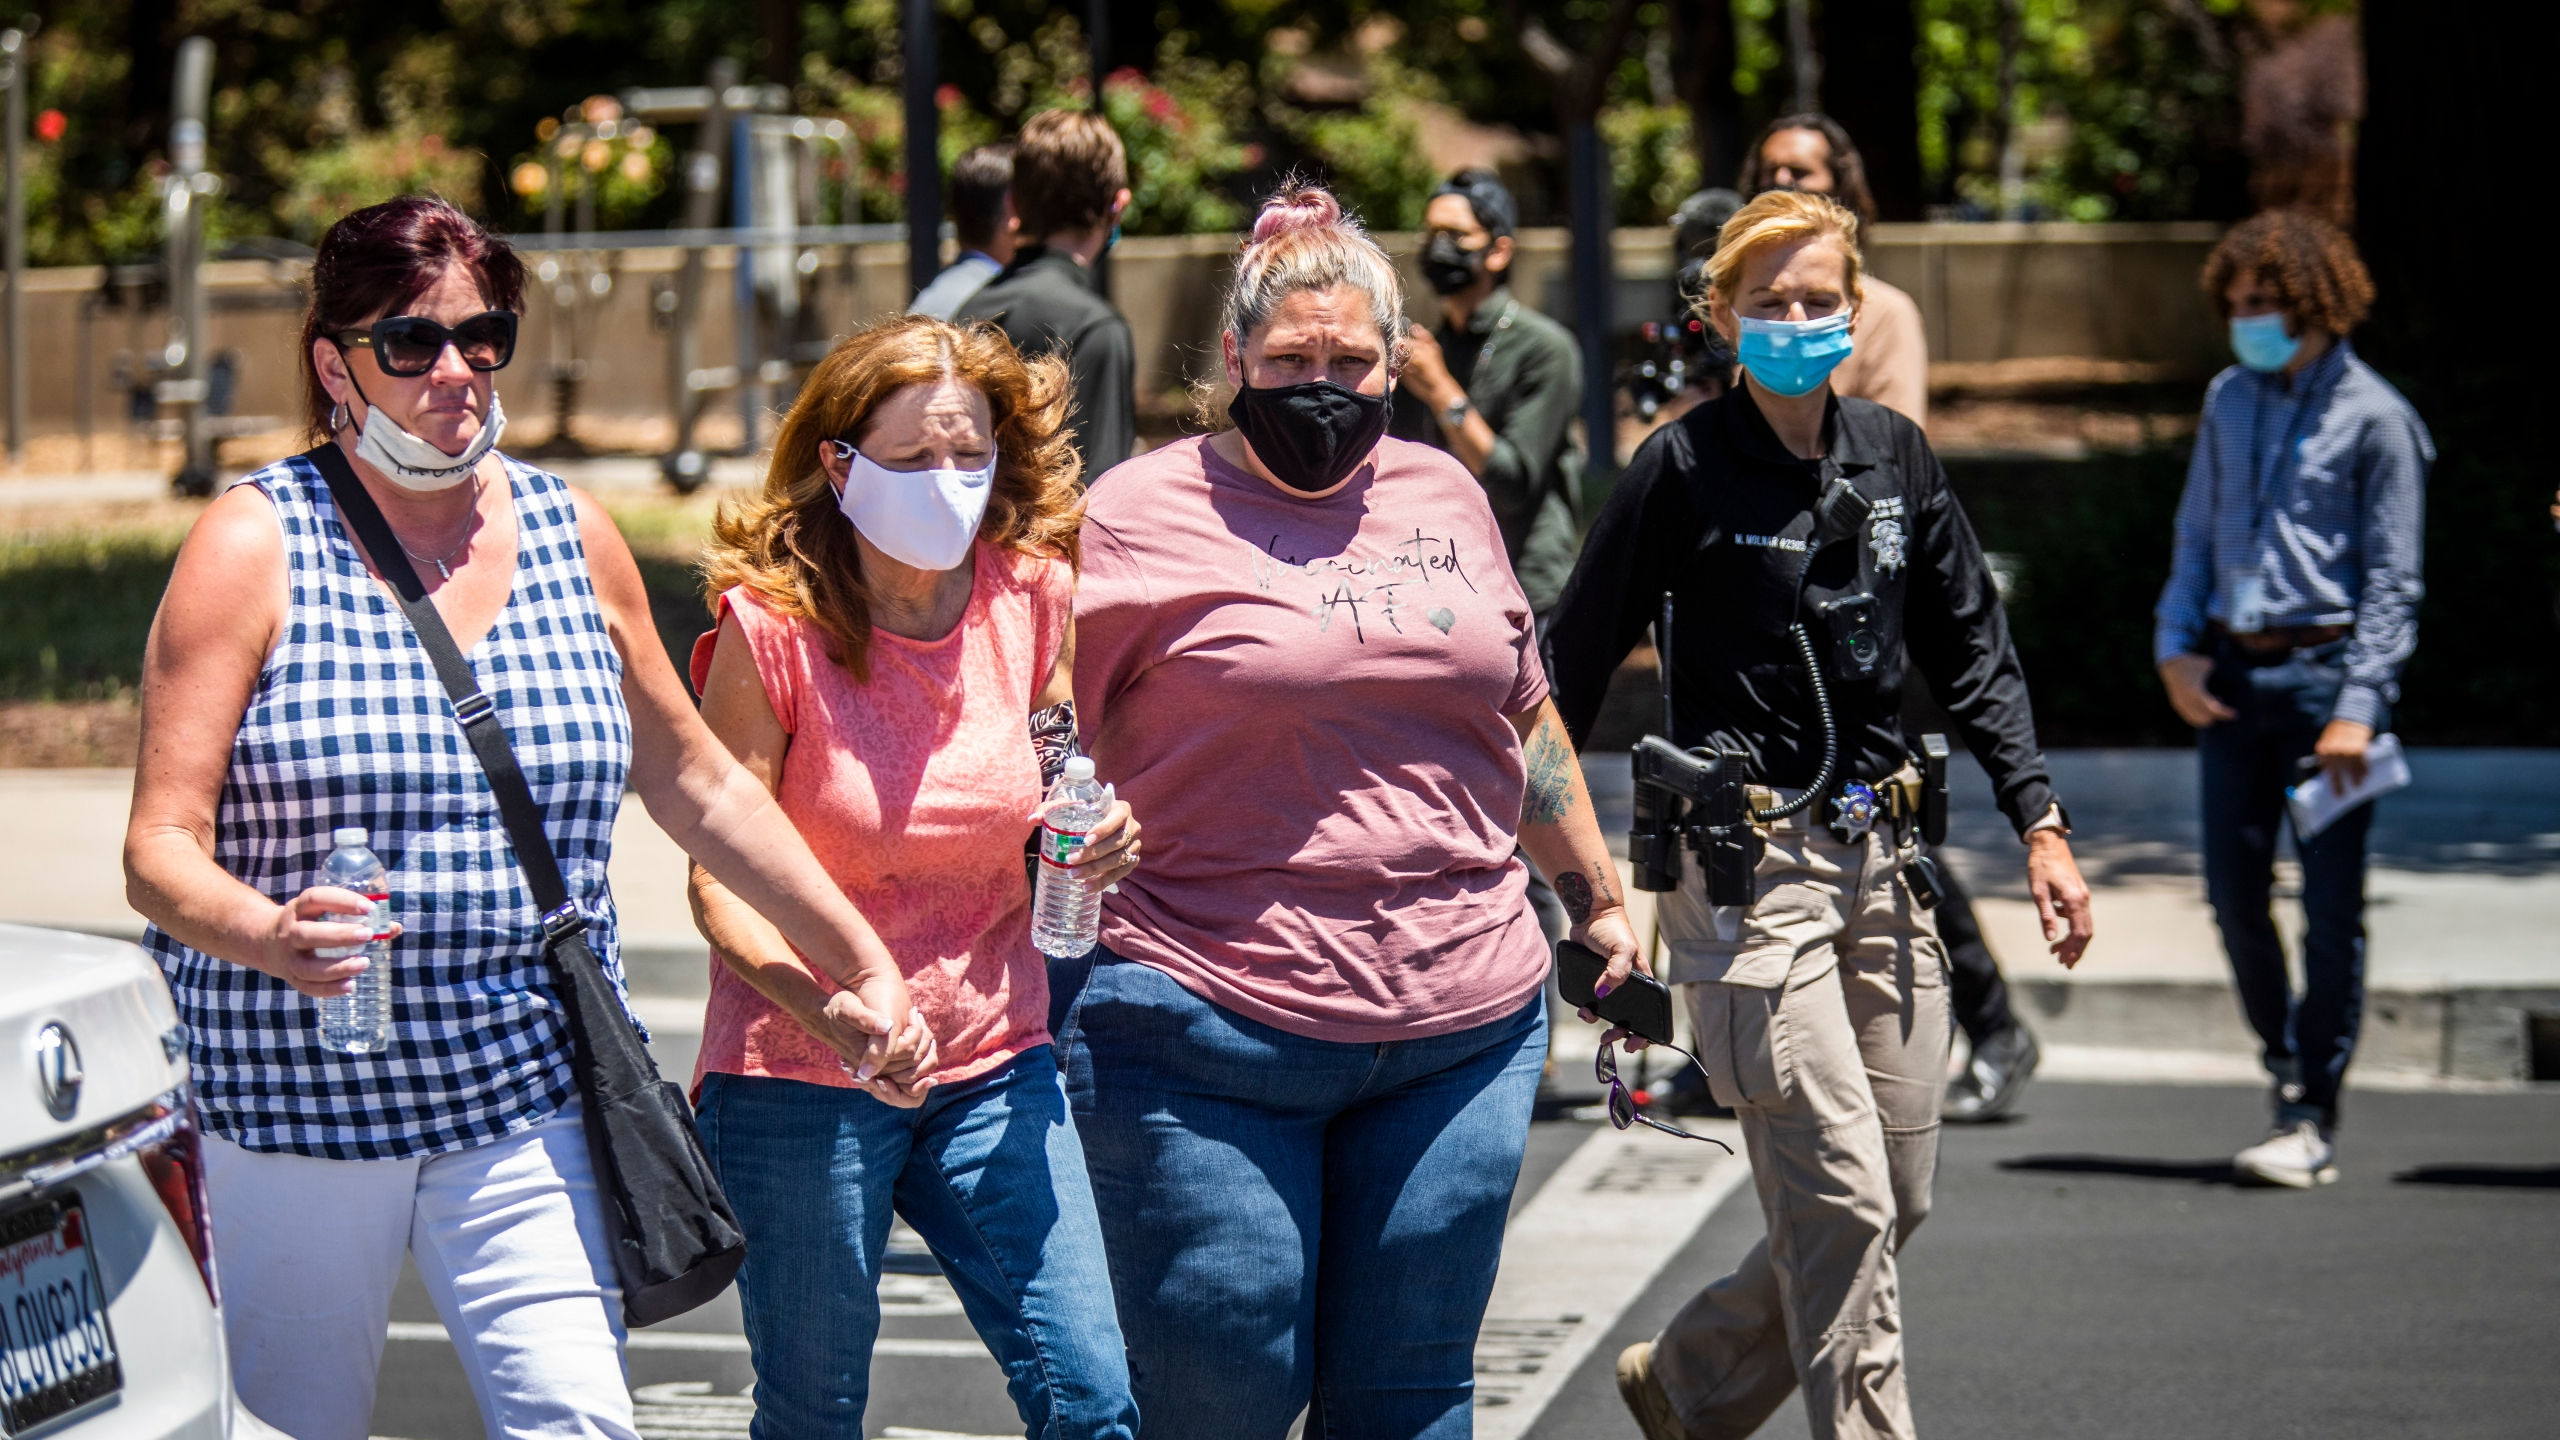 People leave a gathering point for family members and VTA employees on May 26, 2021, in San Jose, Calif. A VTA employee opened fire at the yard, with preliminary reports indicating nine people dead including the gunman. (Philip Pacheco/Getty Images)